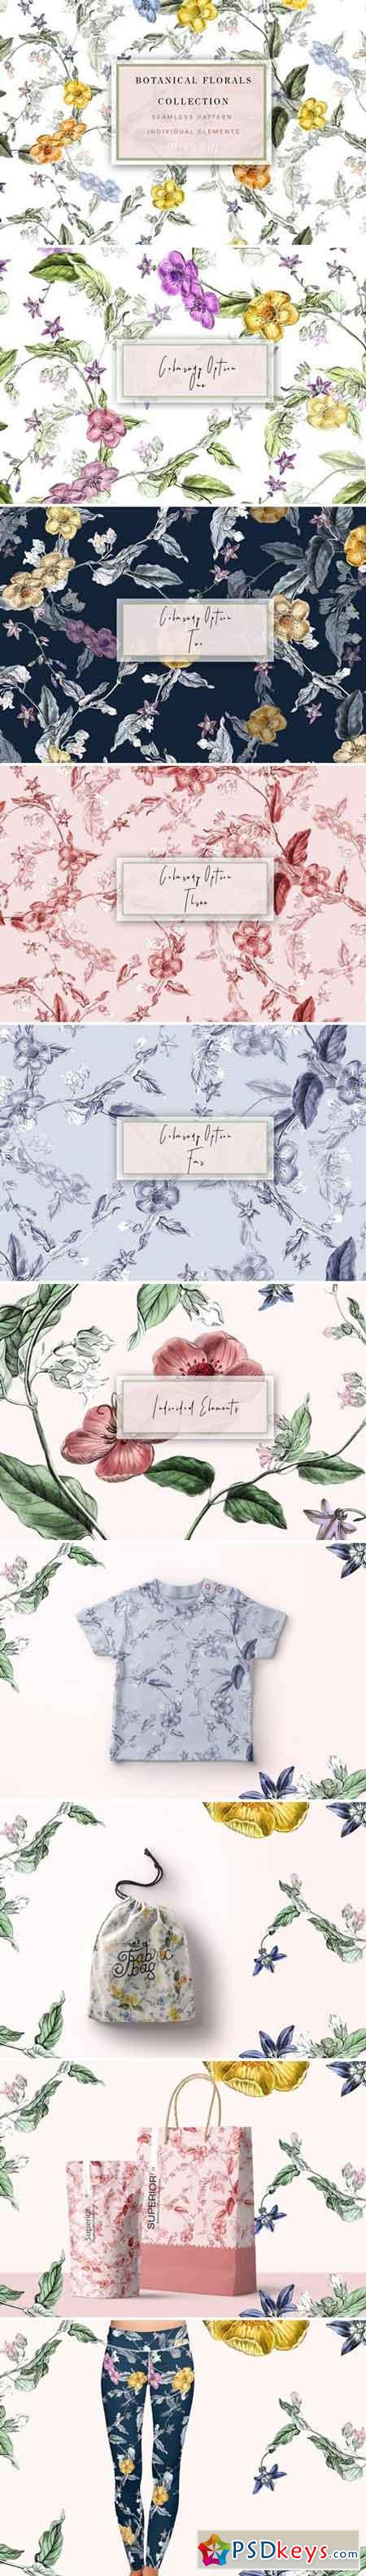 Botanical Flowers Collection 2356142